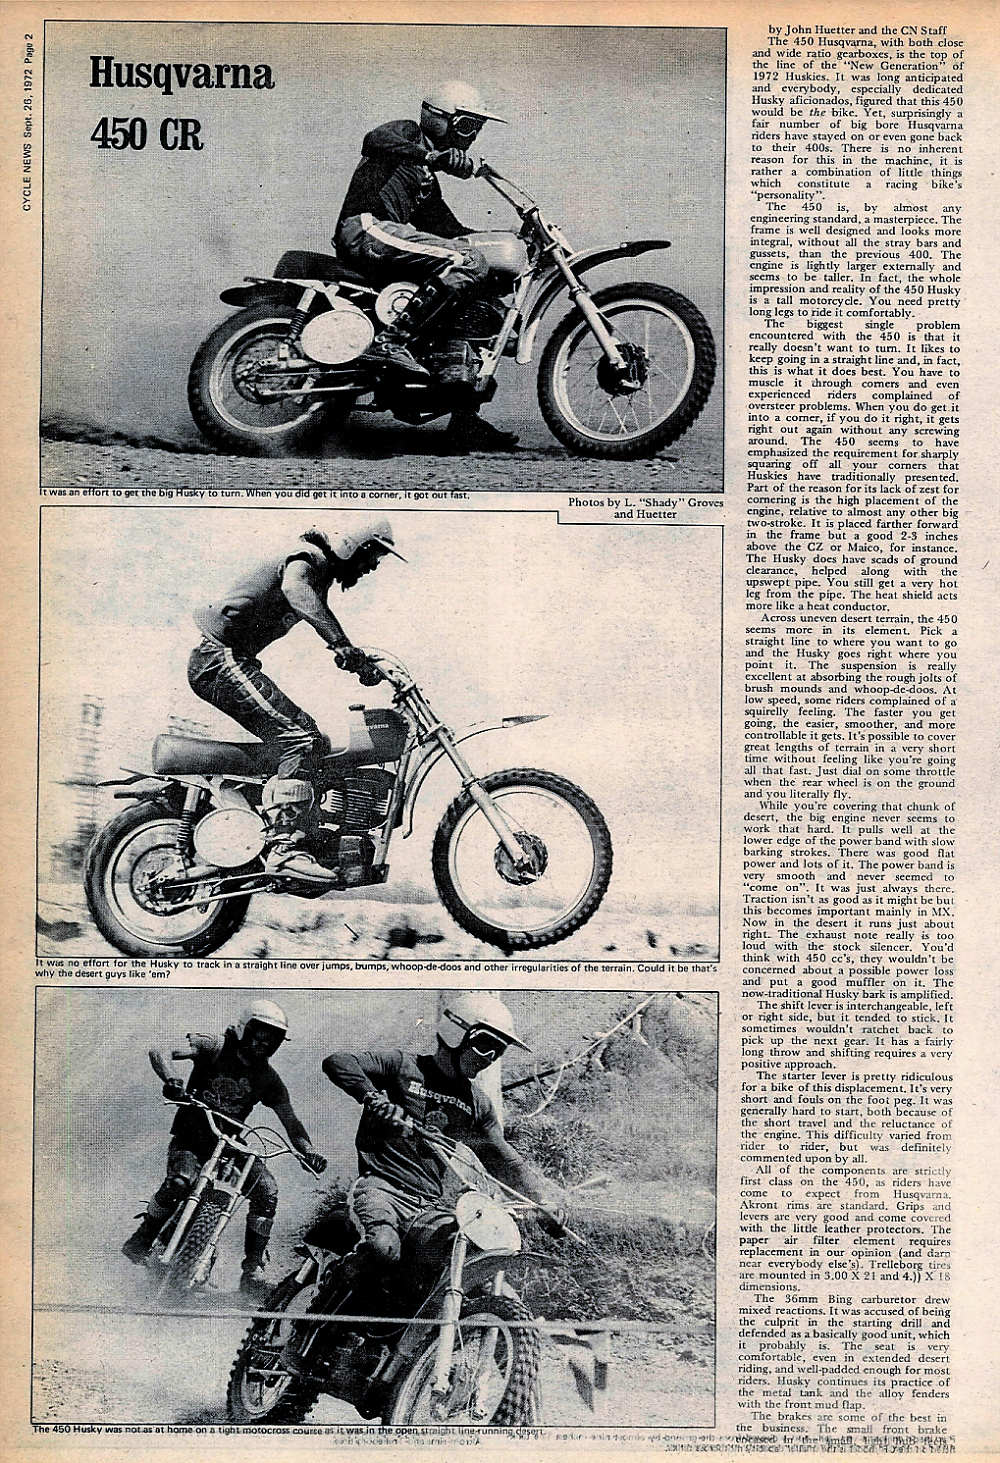 1972 Husqvarna 450 CR road test.1.jpg